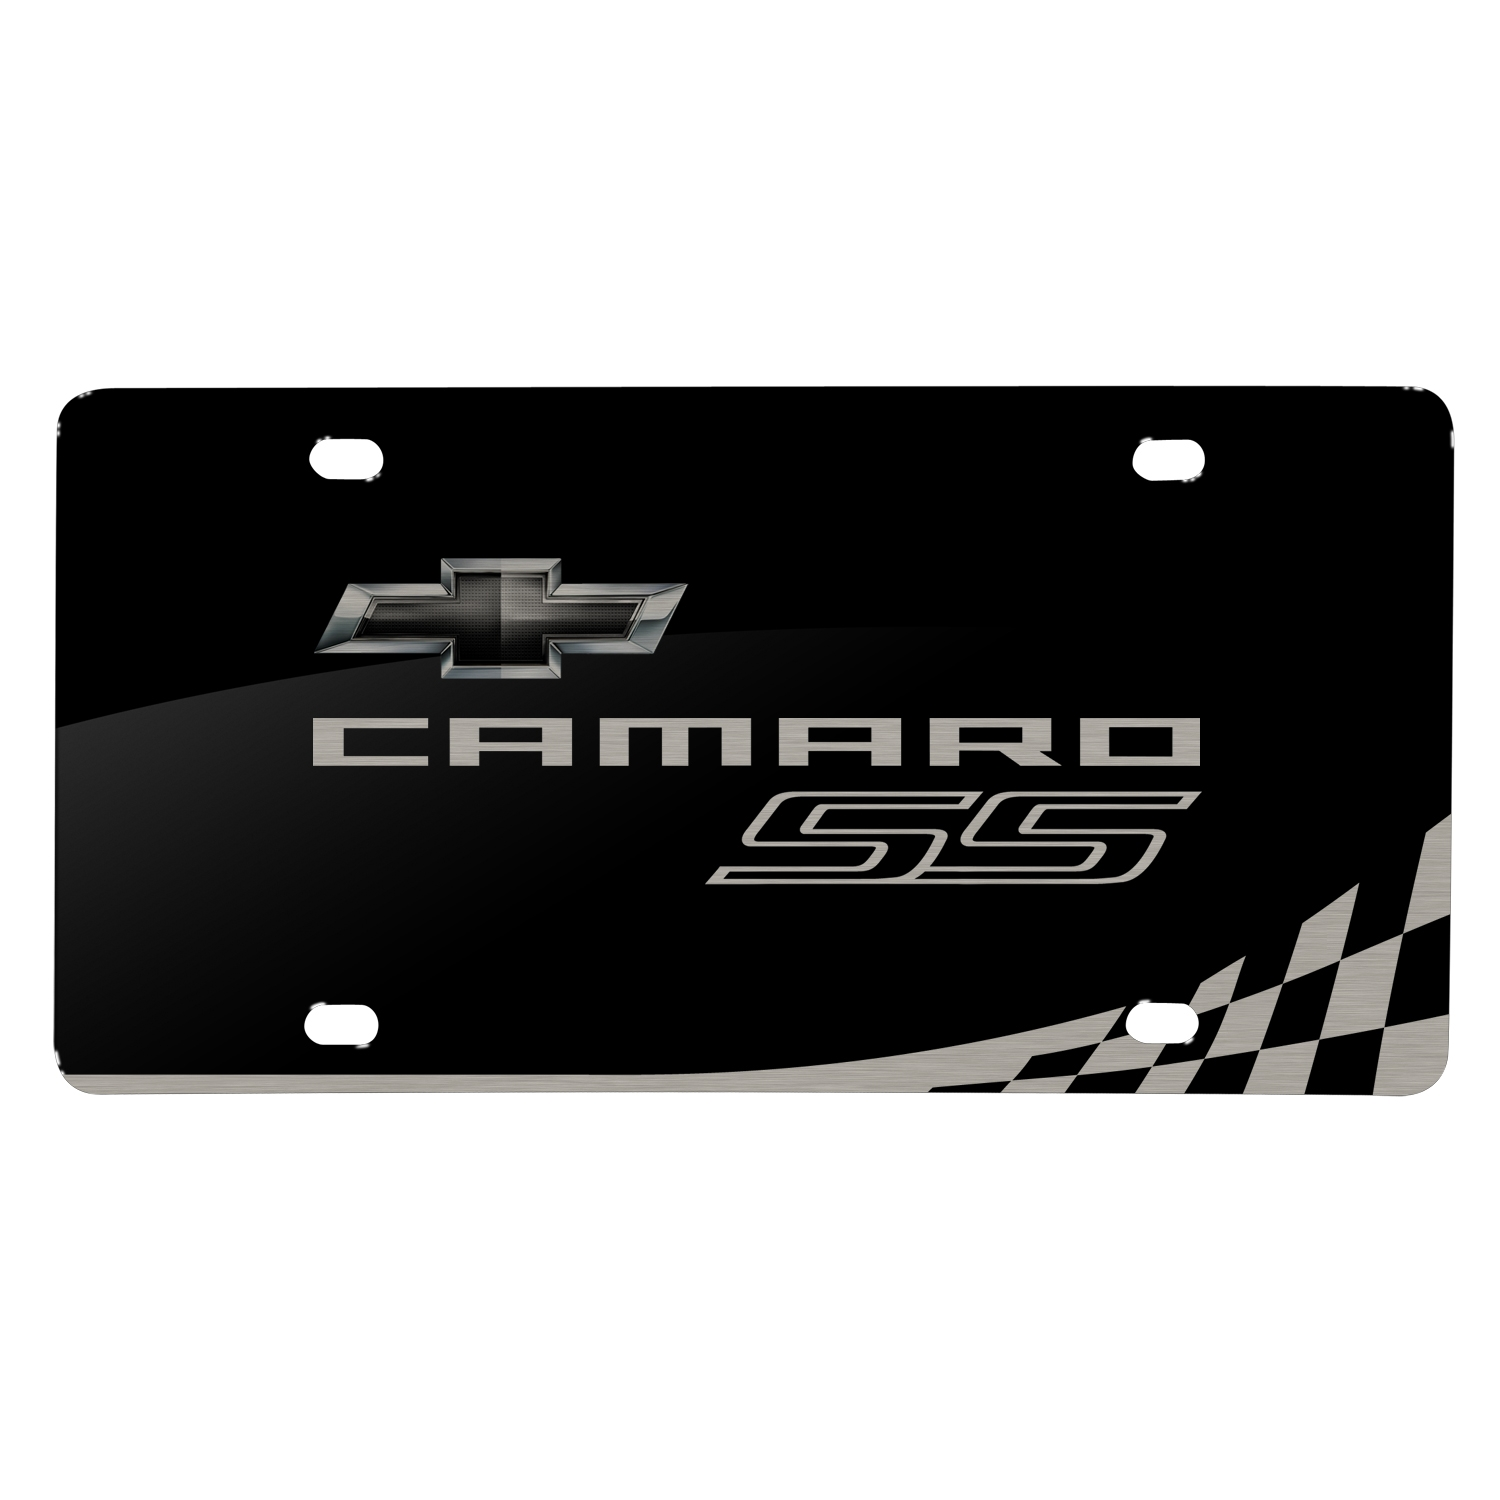 Chevrolet 2010 Camaro SS Laser Mark Checker Stripe Black Acrylic License Plate